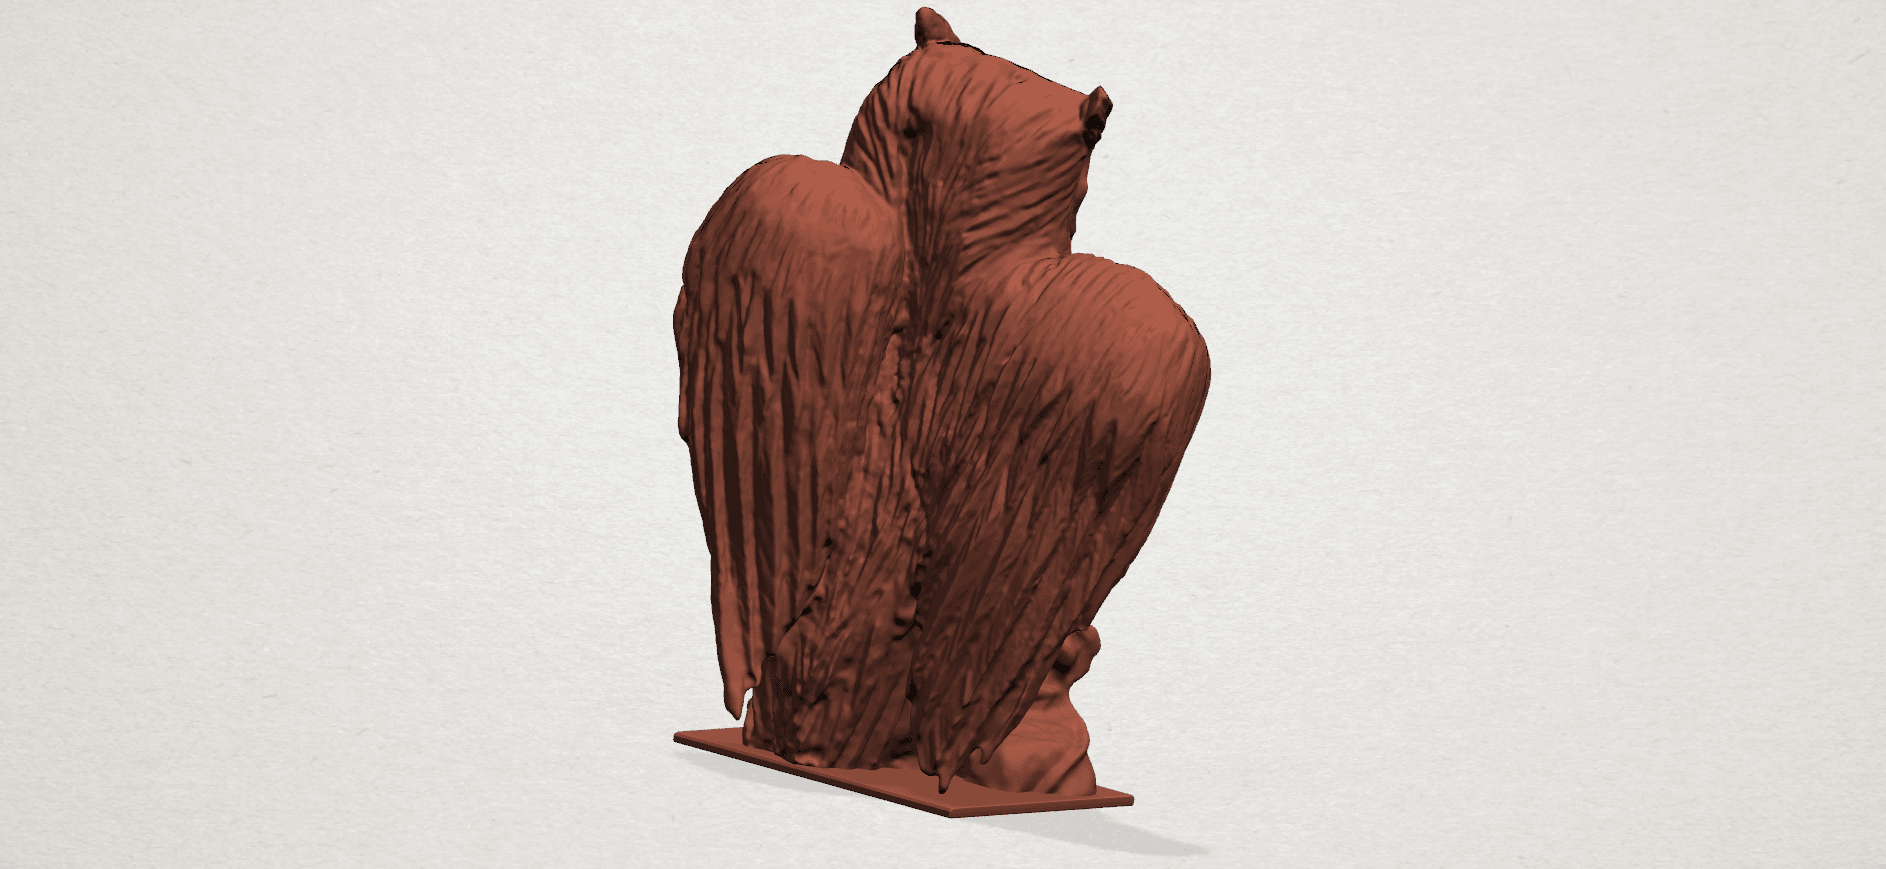 Owl (ii) B03.png Download free STL file Owl 02 • 3D printer object, GeorgesNikkei